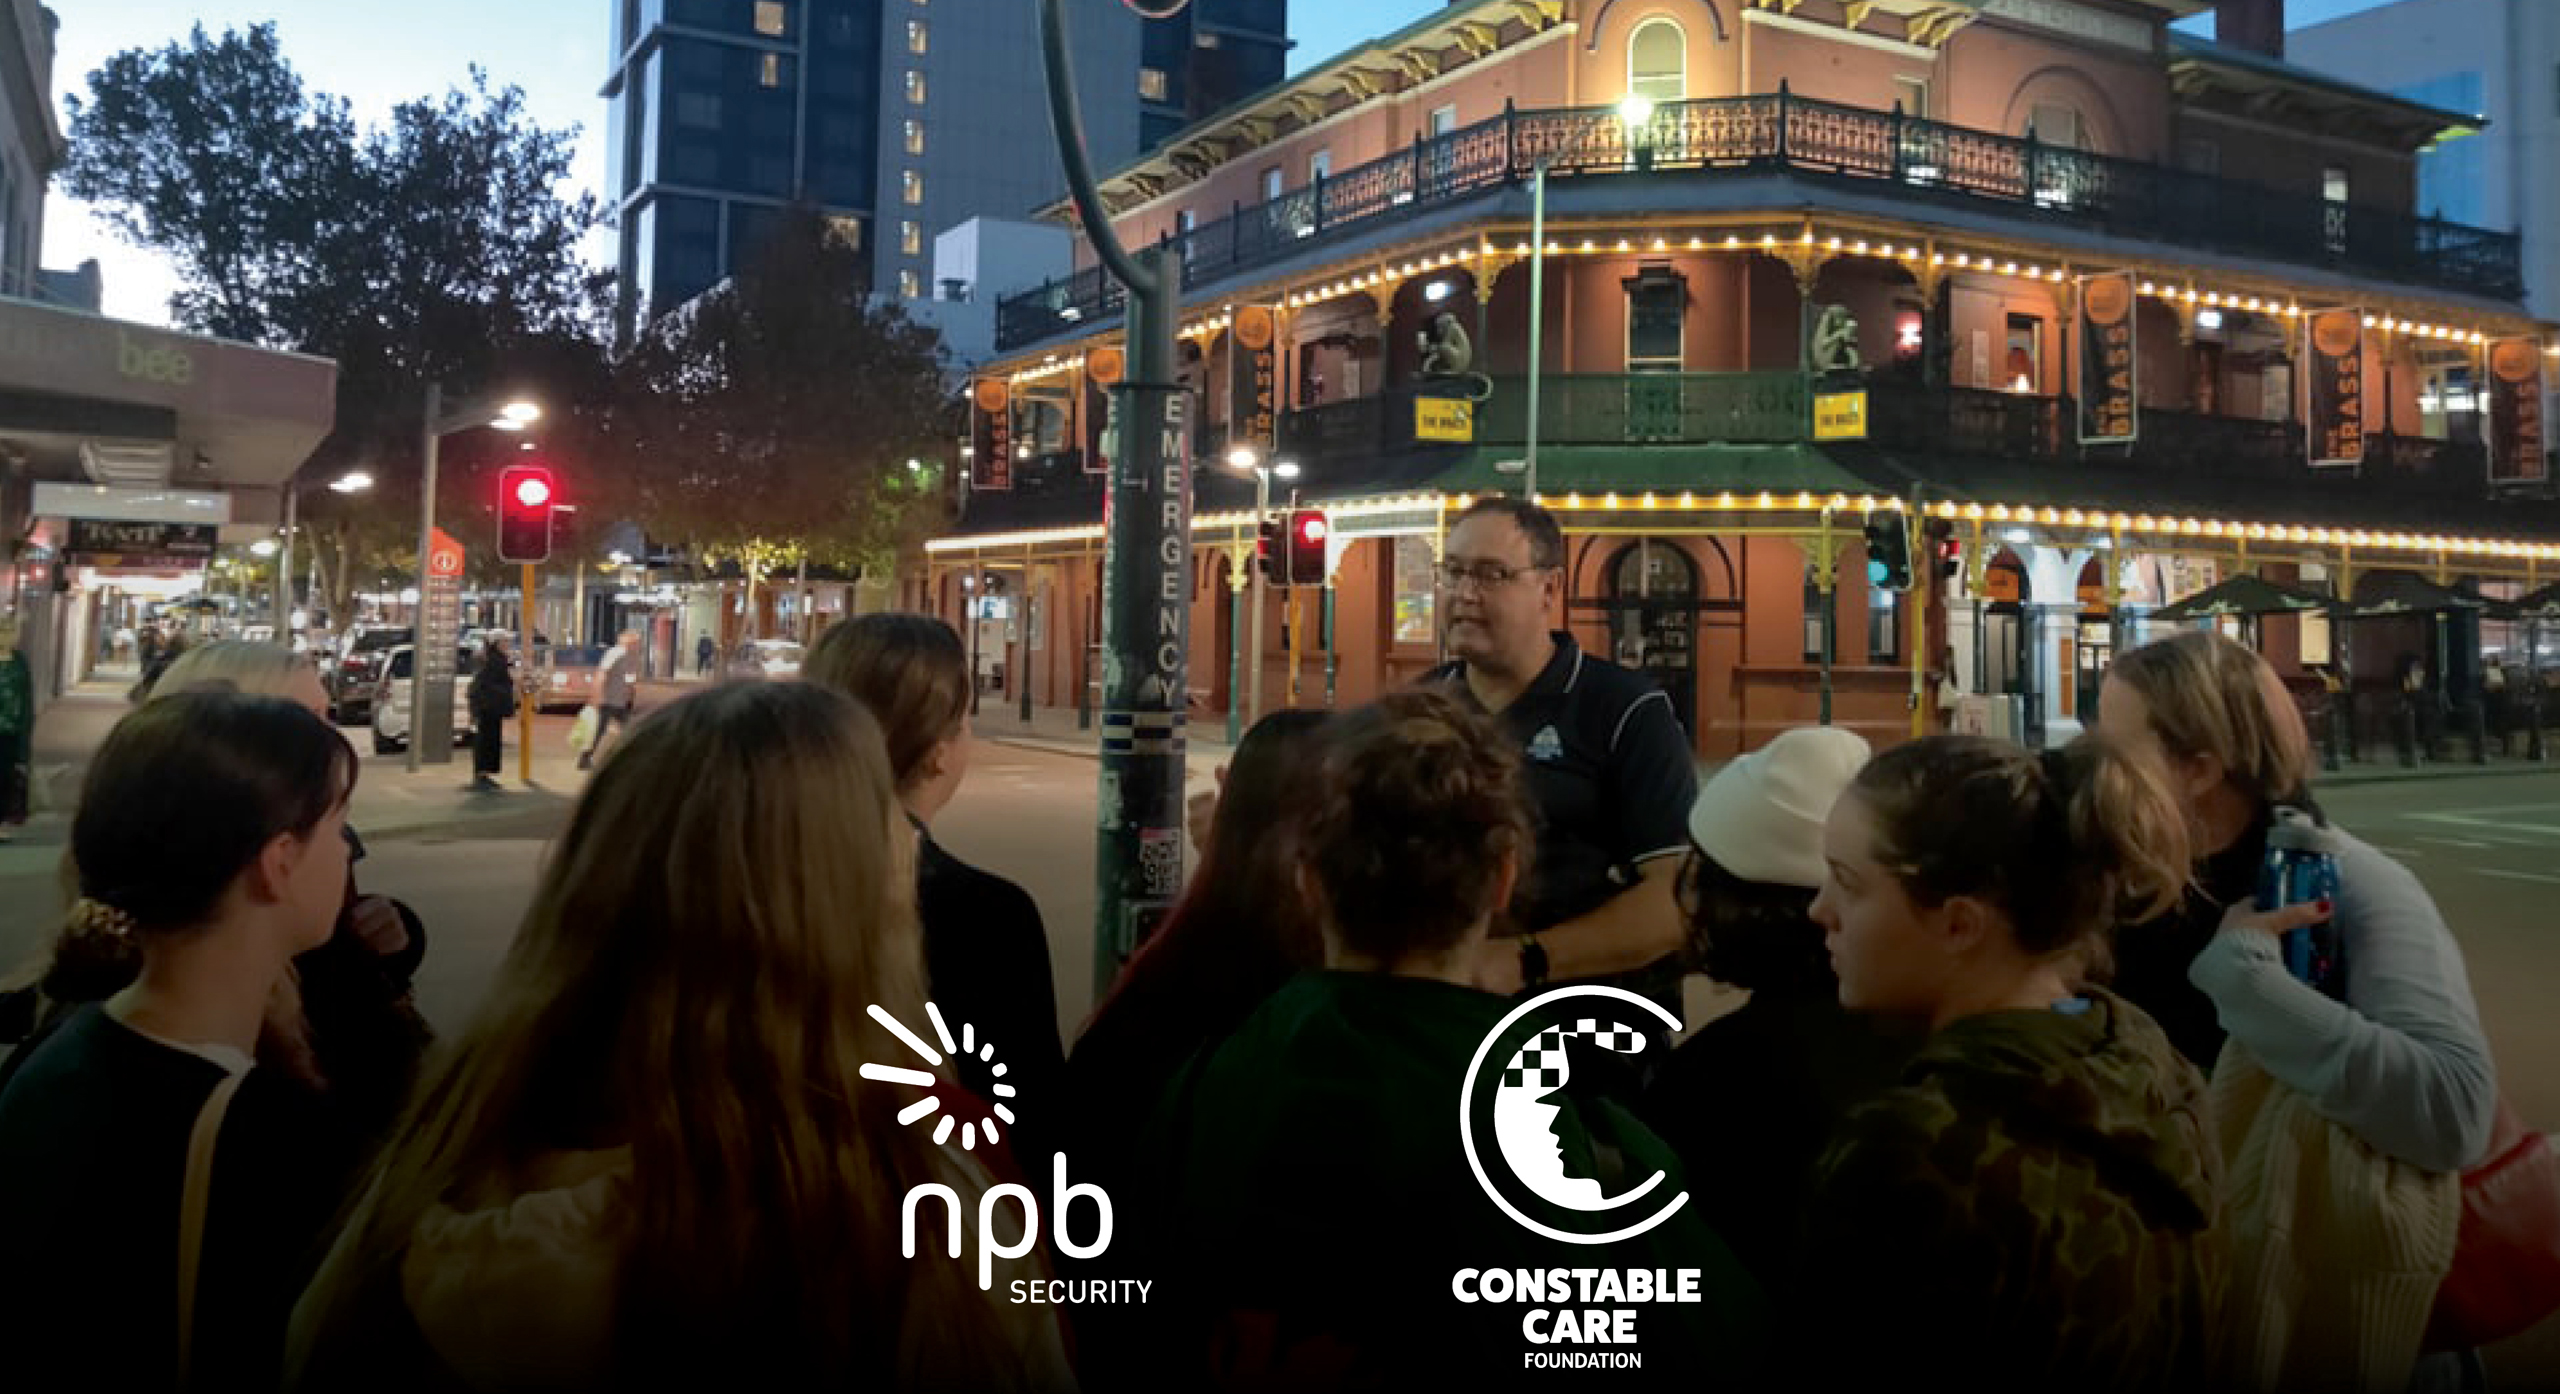 NPB Security partner with Constable Care Foundation